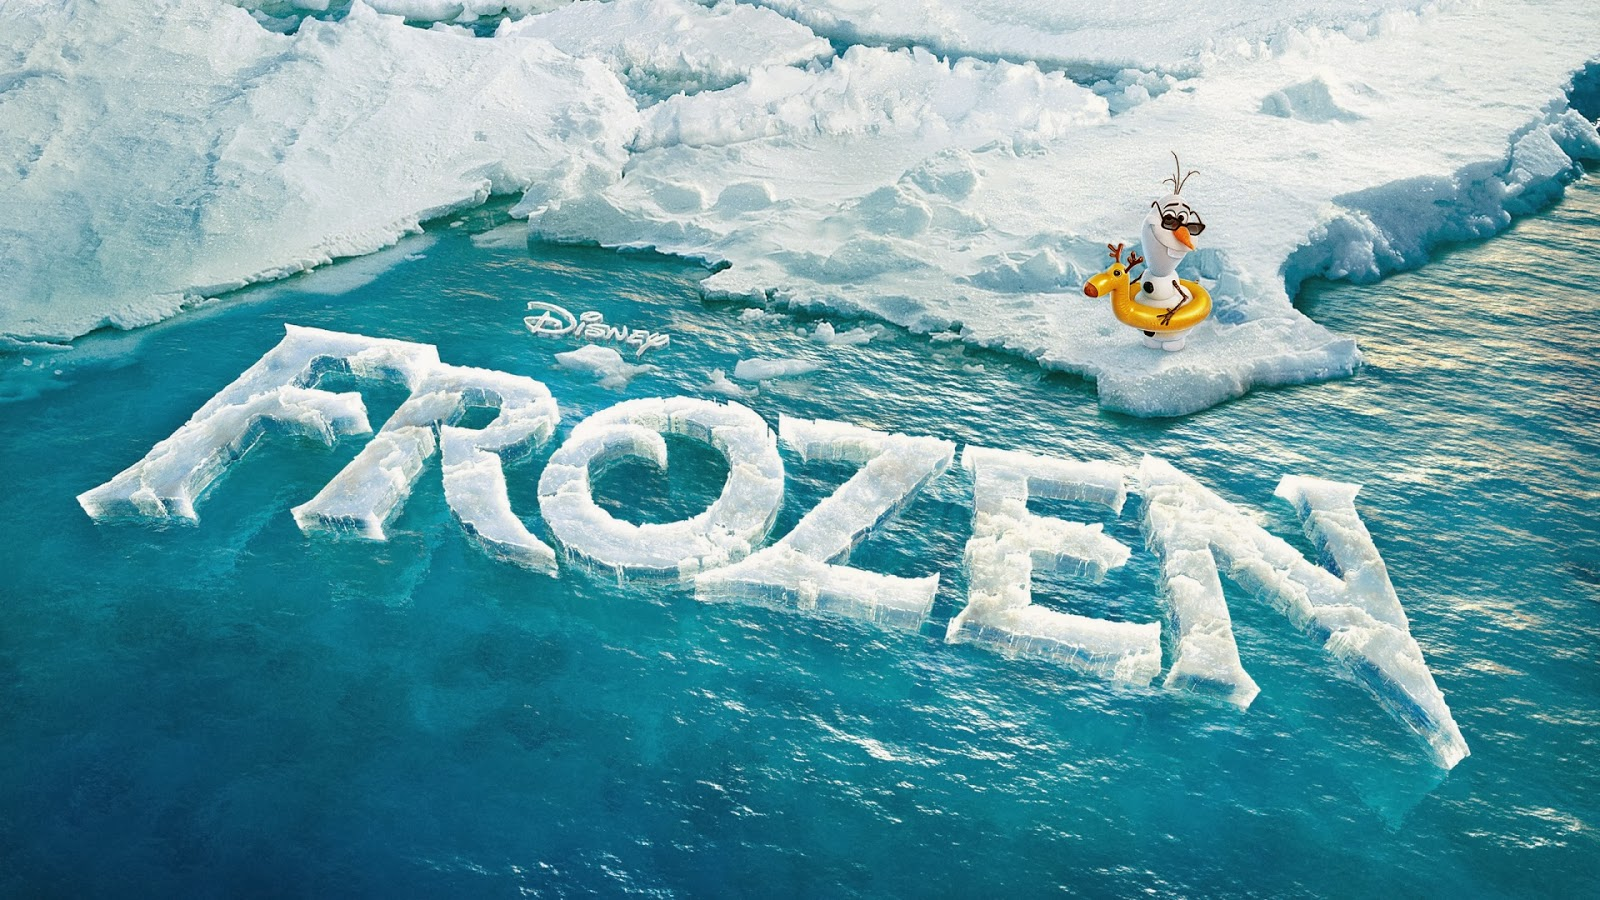 Frozen HD Wallpapers   Disnep 3D Movie   All Wallpaper Gallery     1920    1080 and HD Widescreen Wallpapers in 720p  1080p  For your Desktop  PC  Android Phone  Laptop  Gadget  Mobile Phone and other tablets facebook